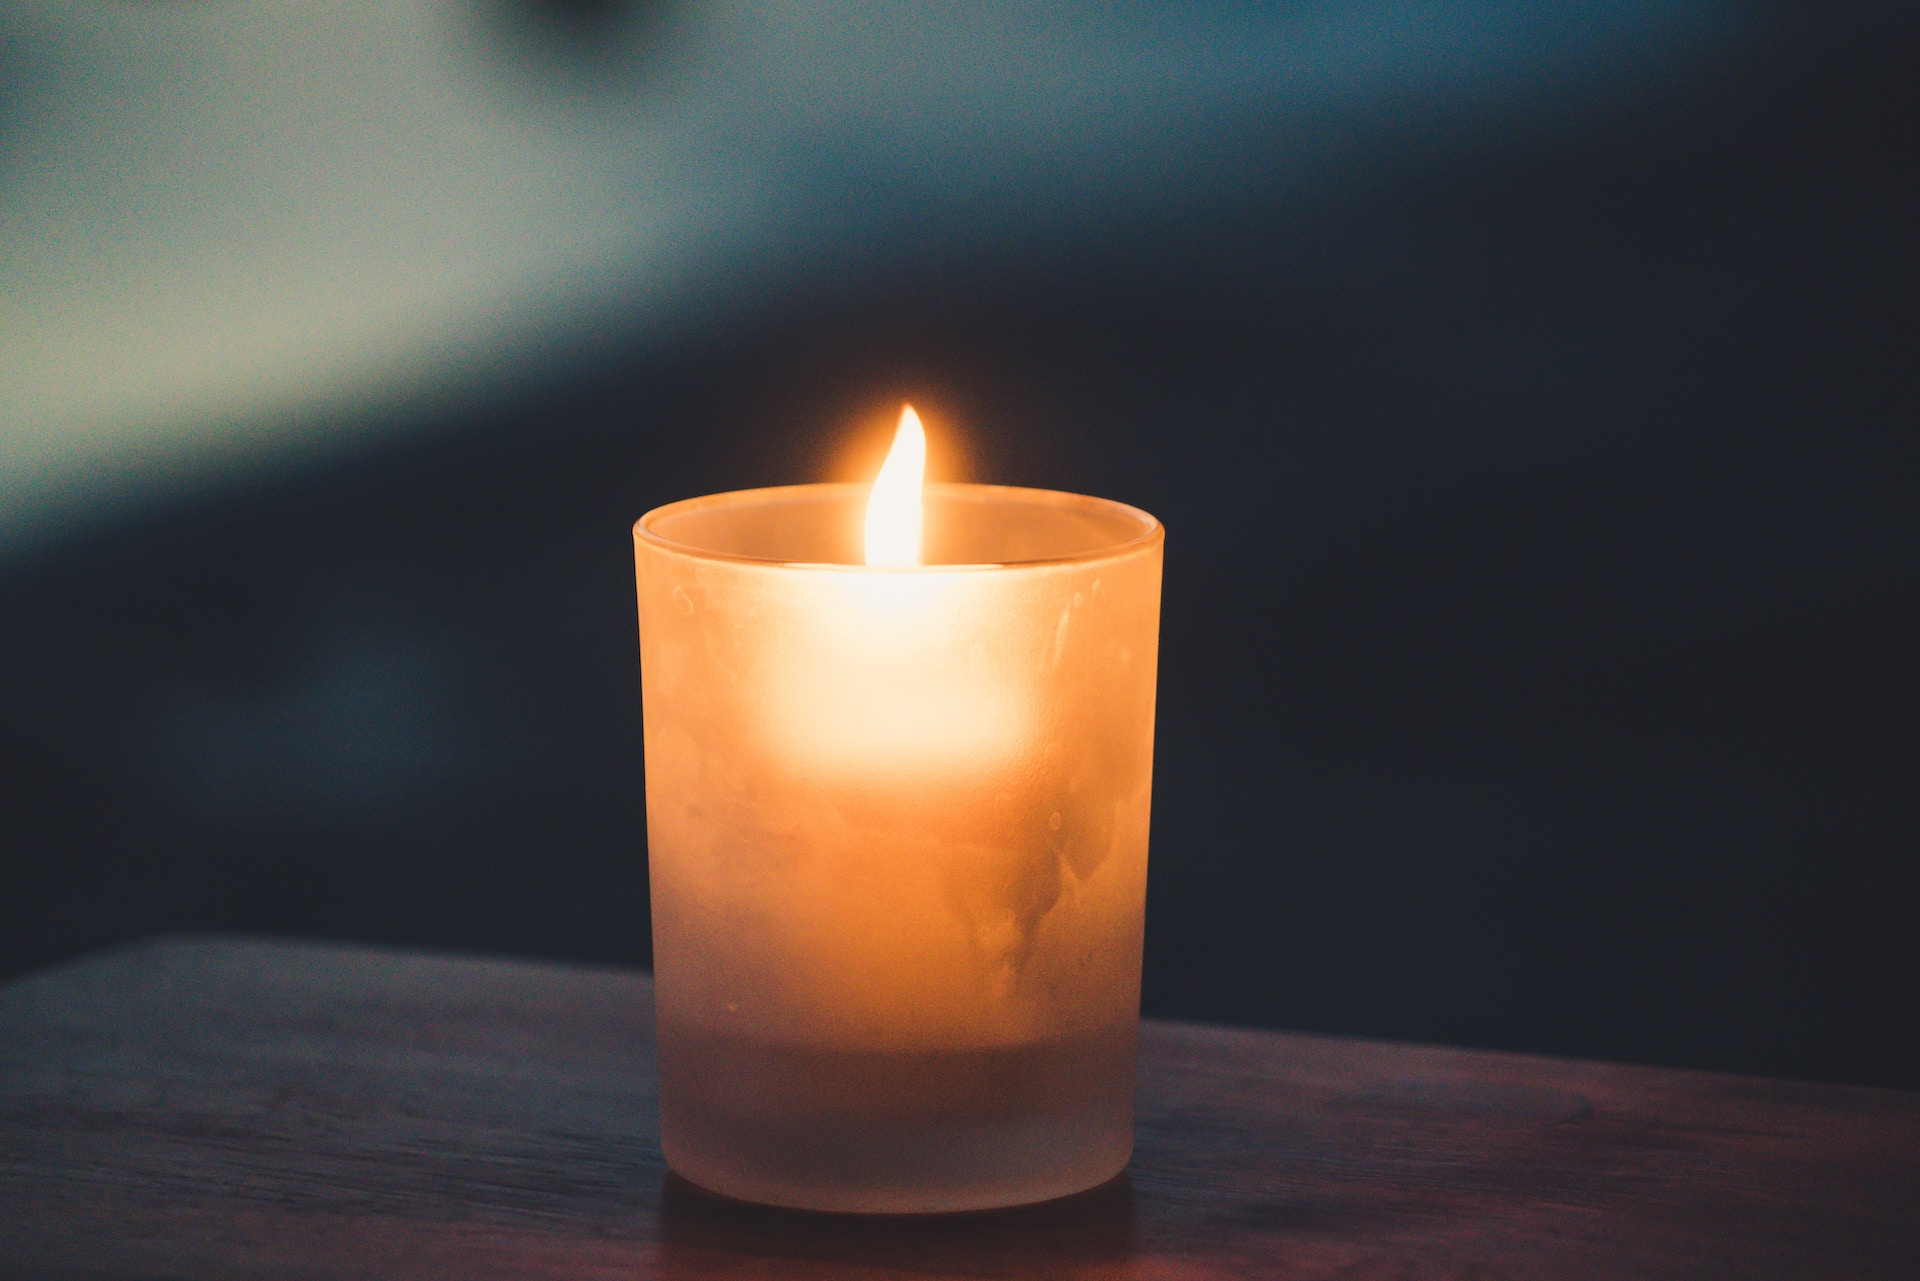 A candle on a table.